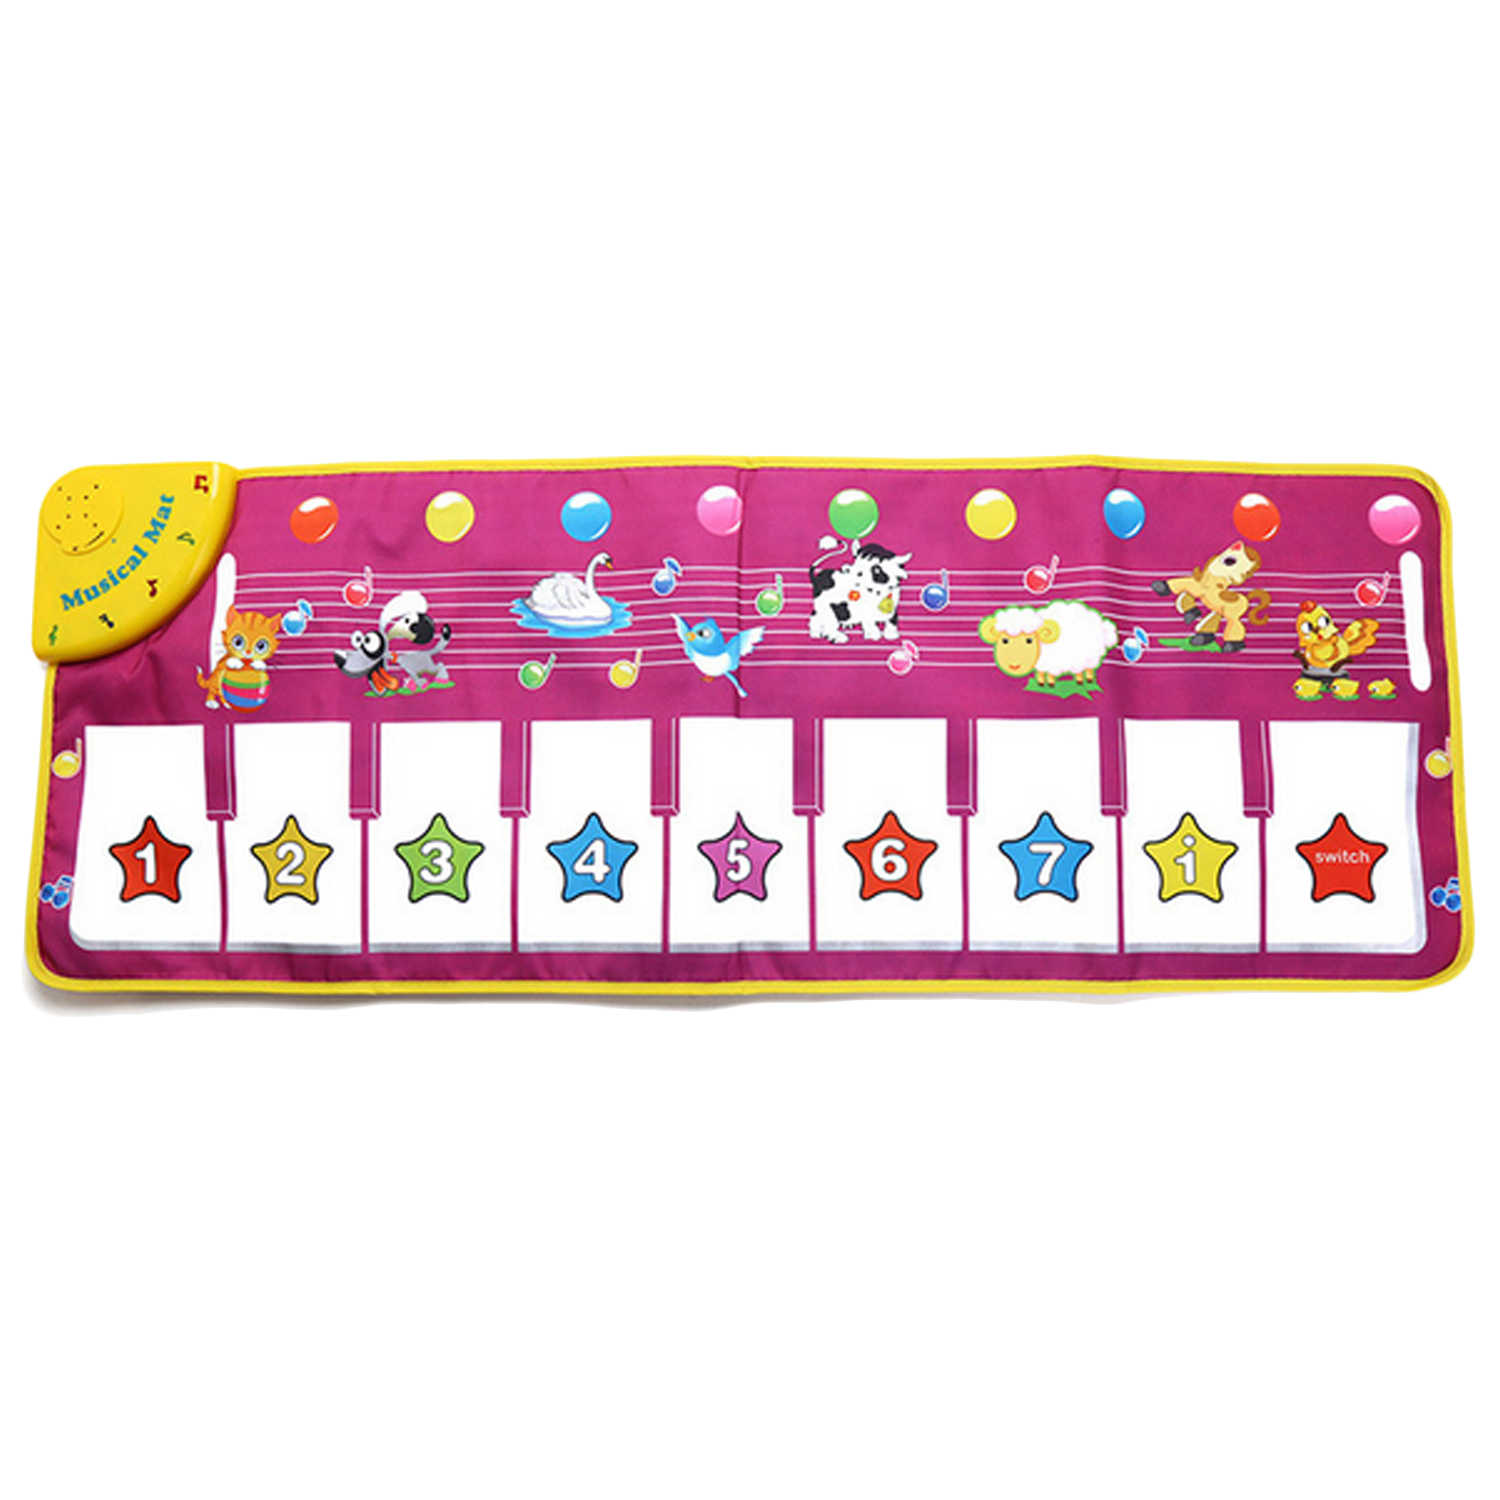 Cartoon Funny Music Musical Piano Keyboard Instrument Animal Sound Carpet  Mat Crawling Playmat Kid Children Baby Educational Toy